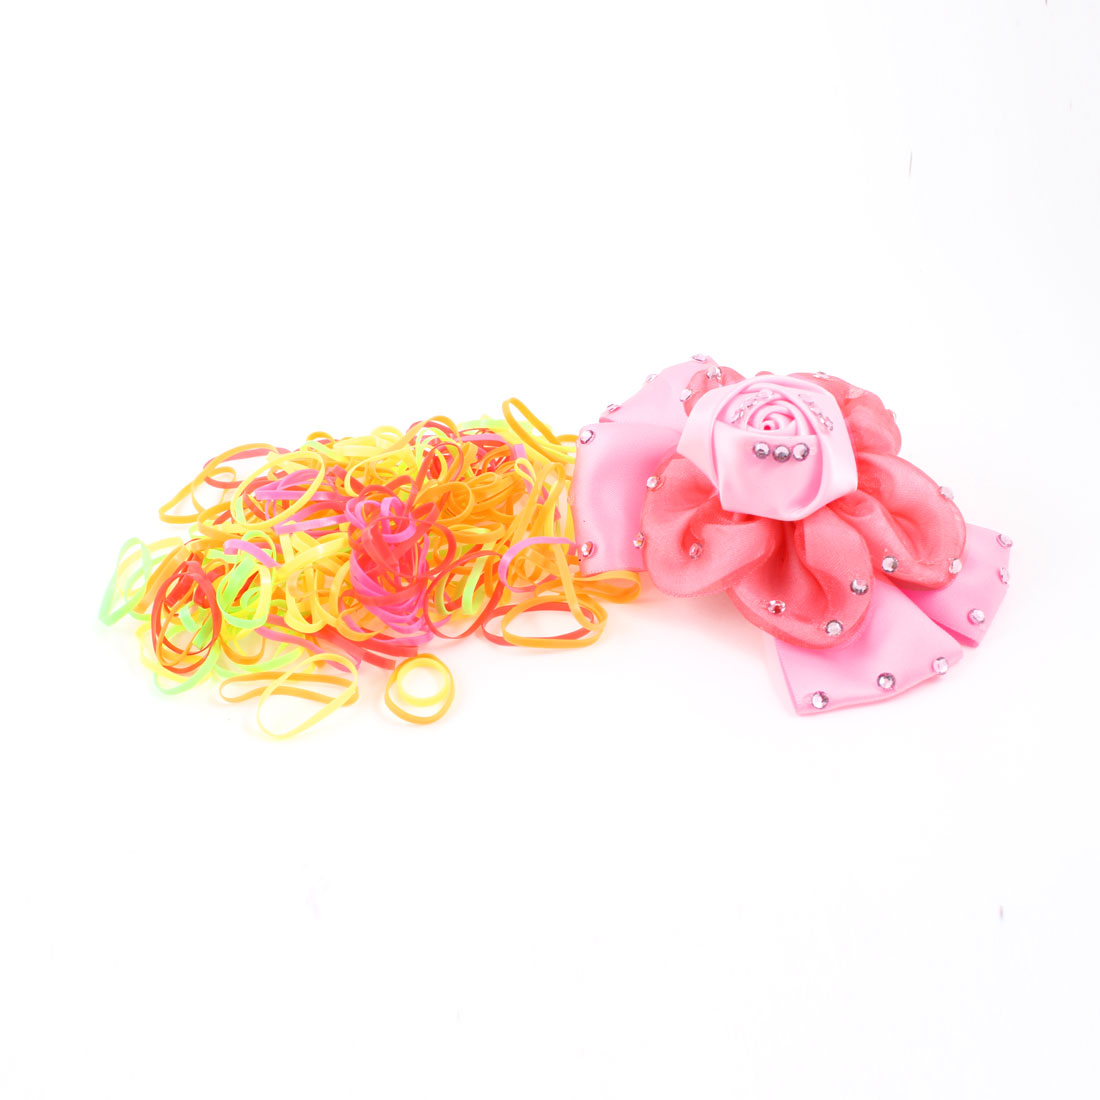 250 Pcs Elastic Rubber Band Hairband Rope Ponytail Holder w Alligator Hair Clip